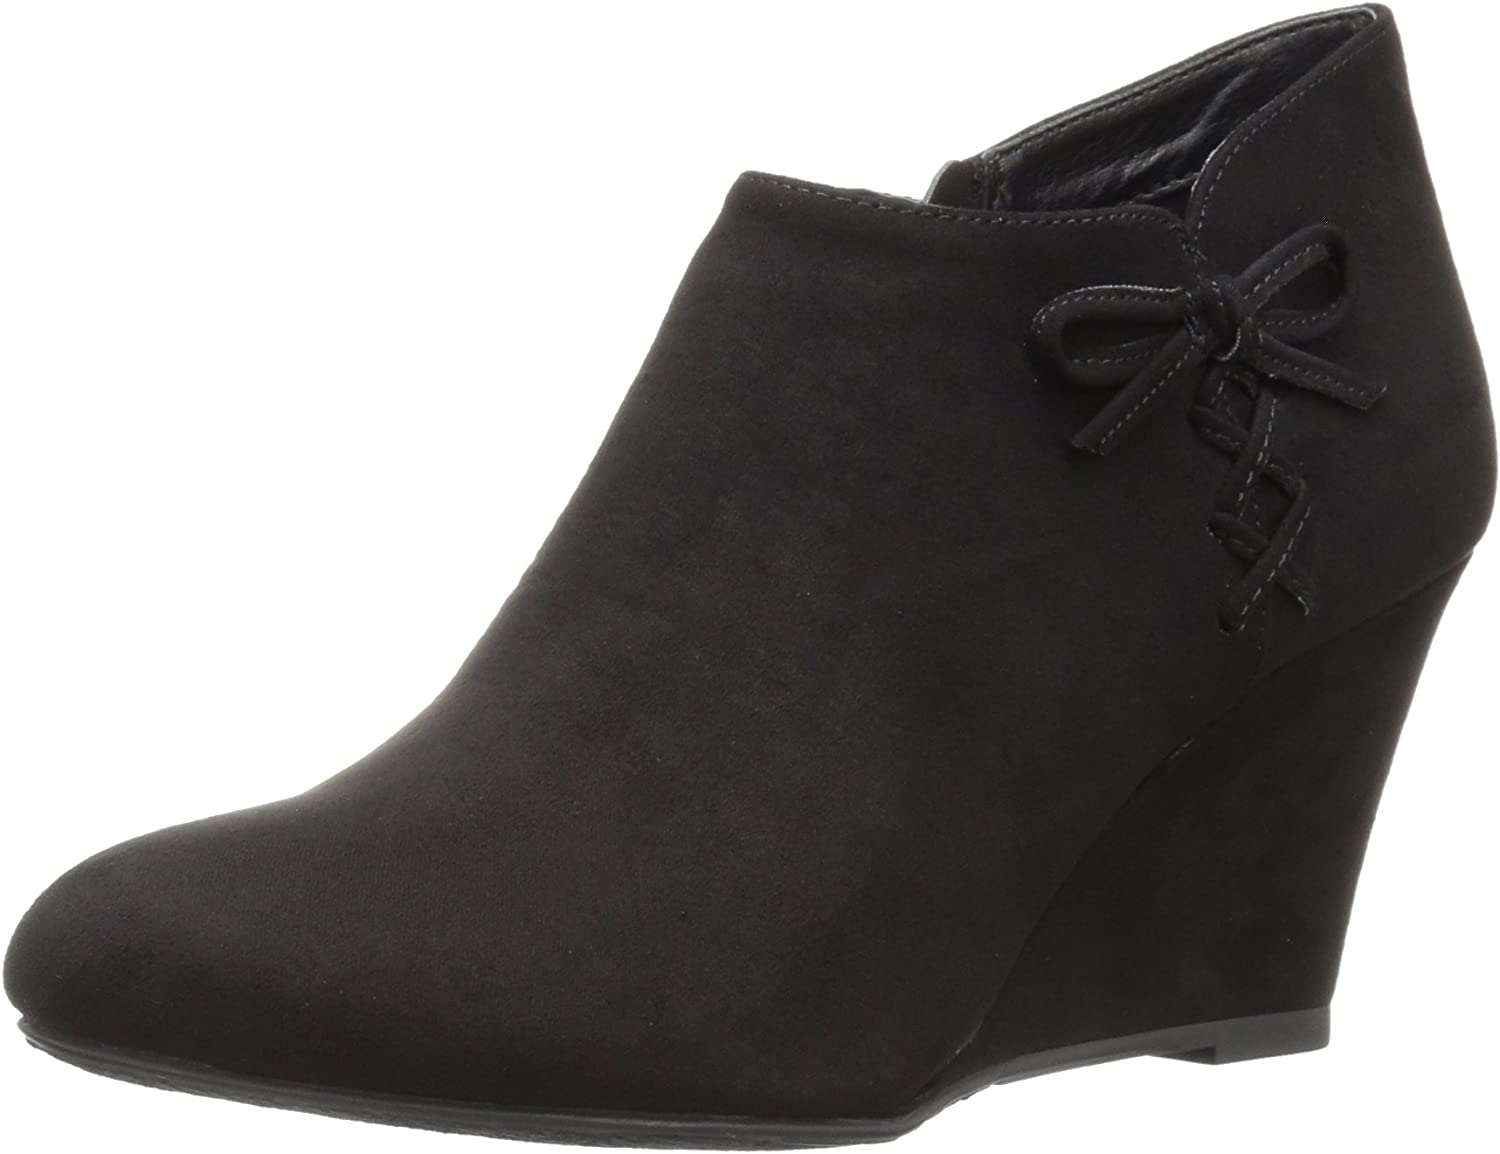 CL by Chinese Laundry Women's Vencia Wedge Bootie